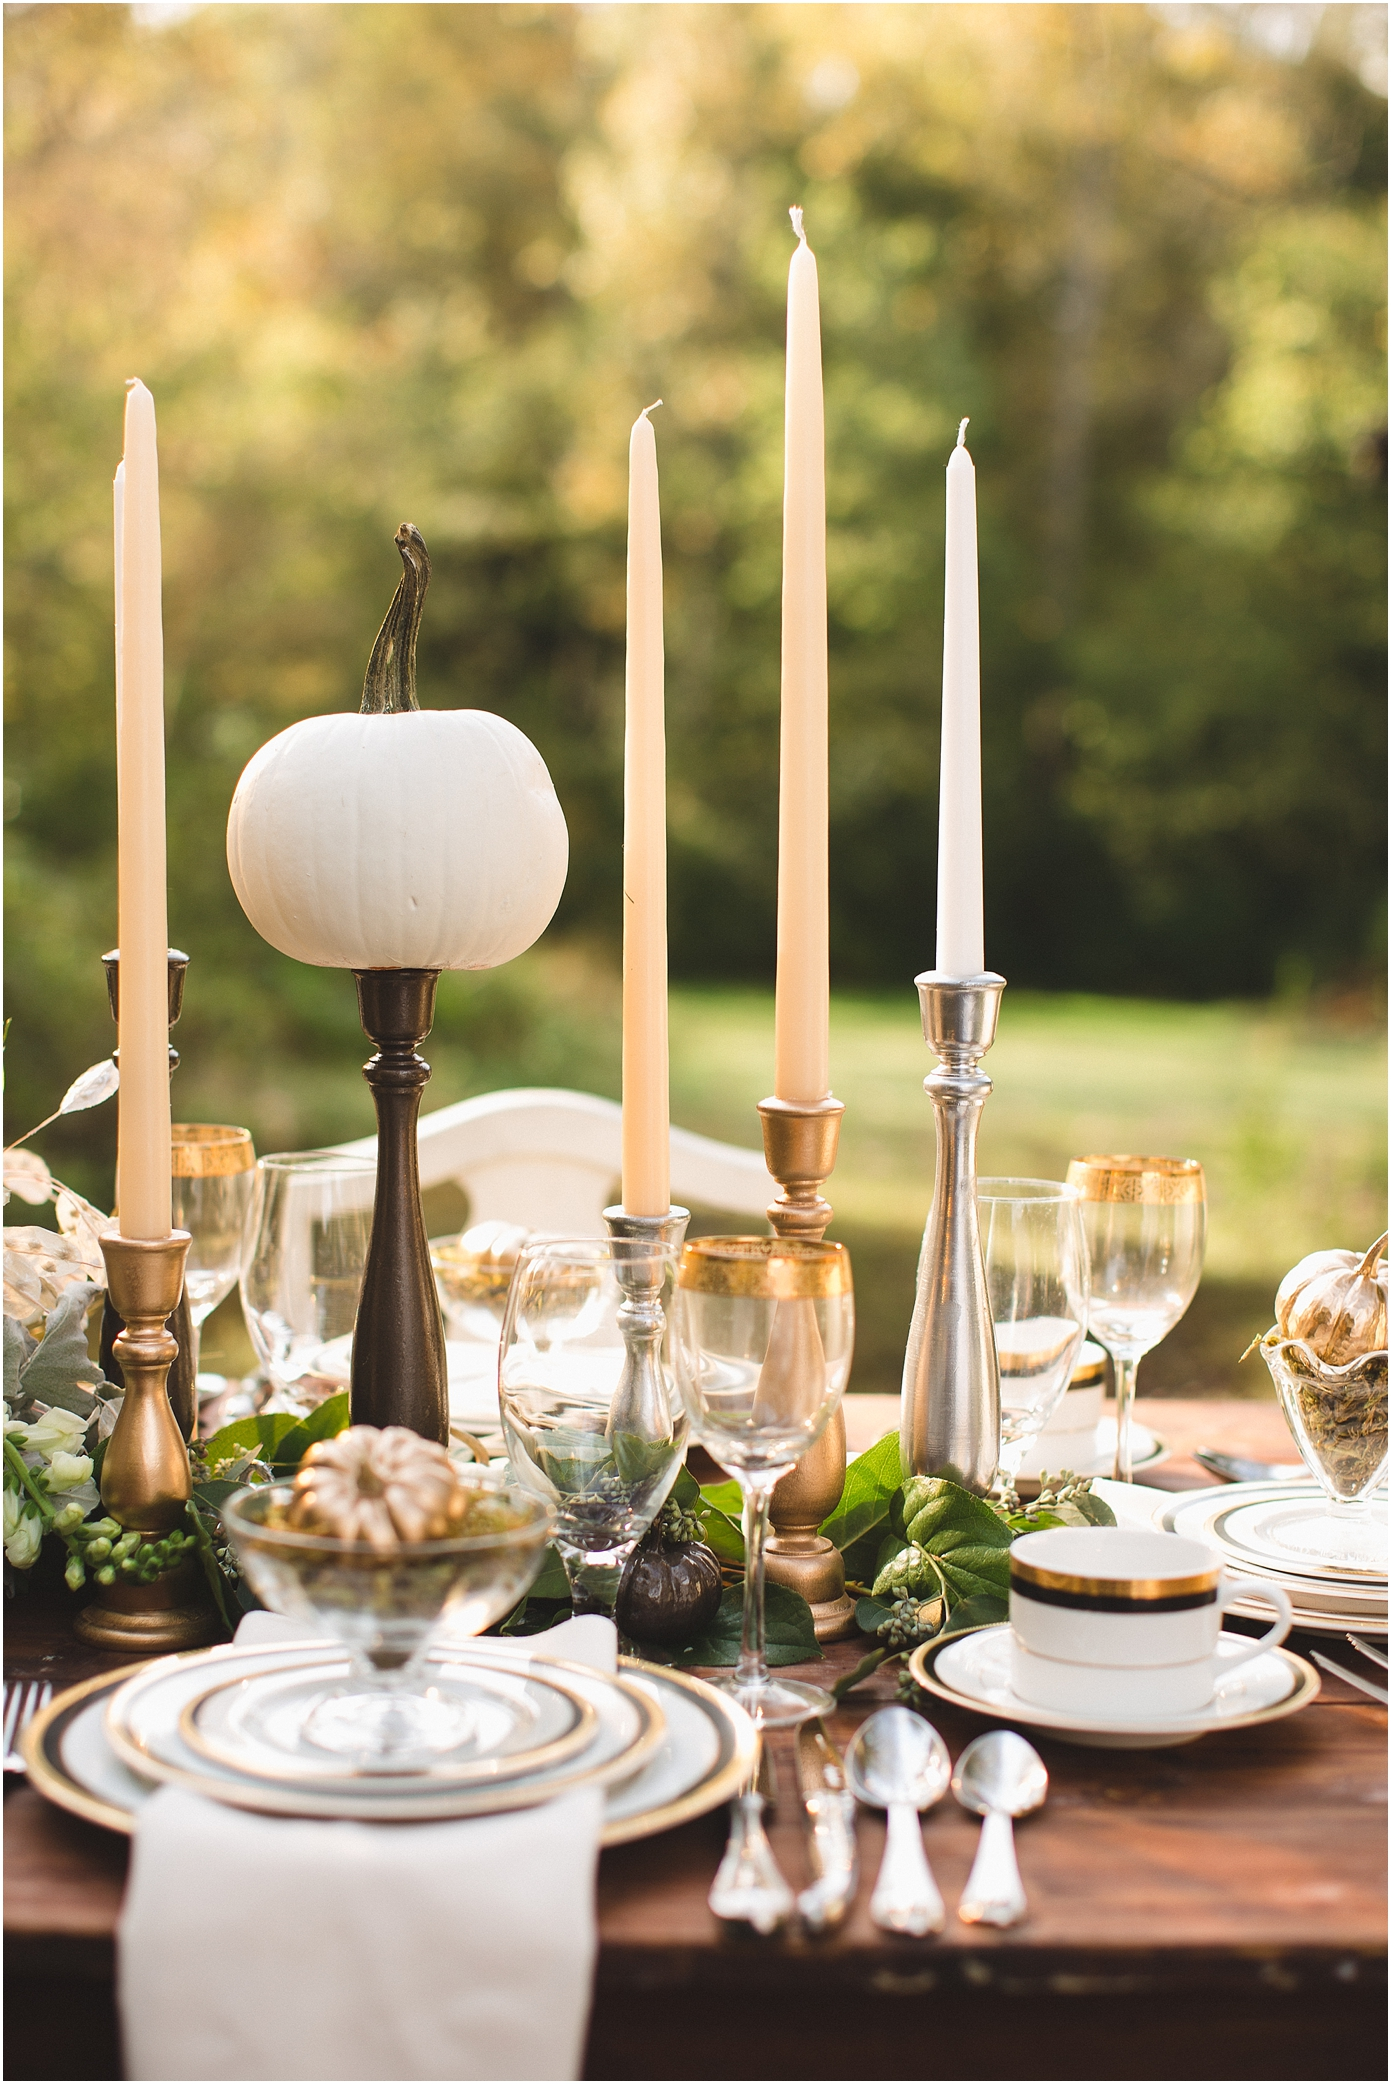 Thanksgiving table setting ideas and decorations